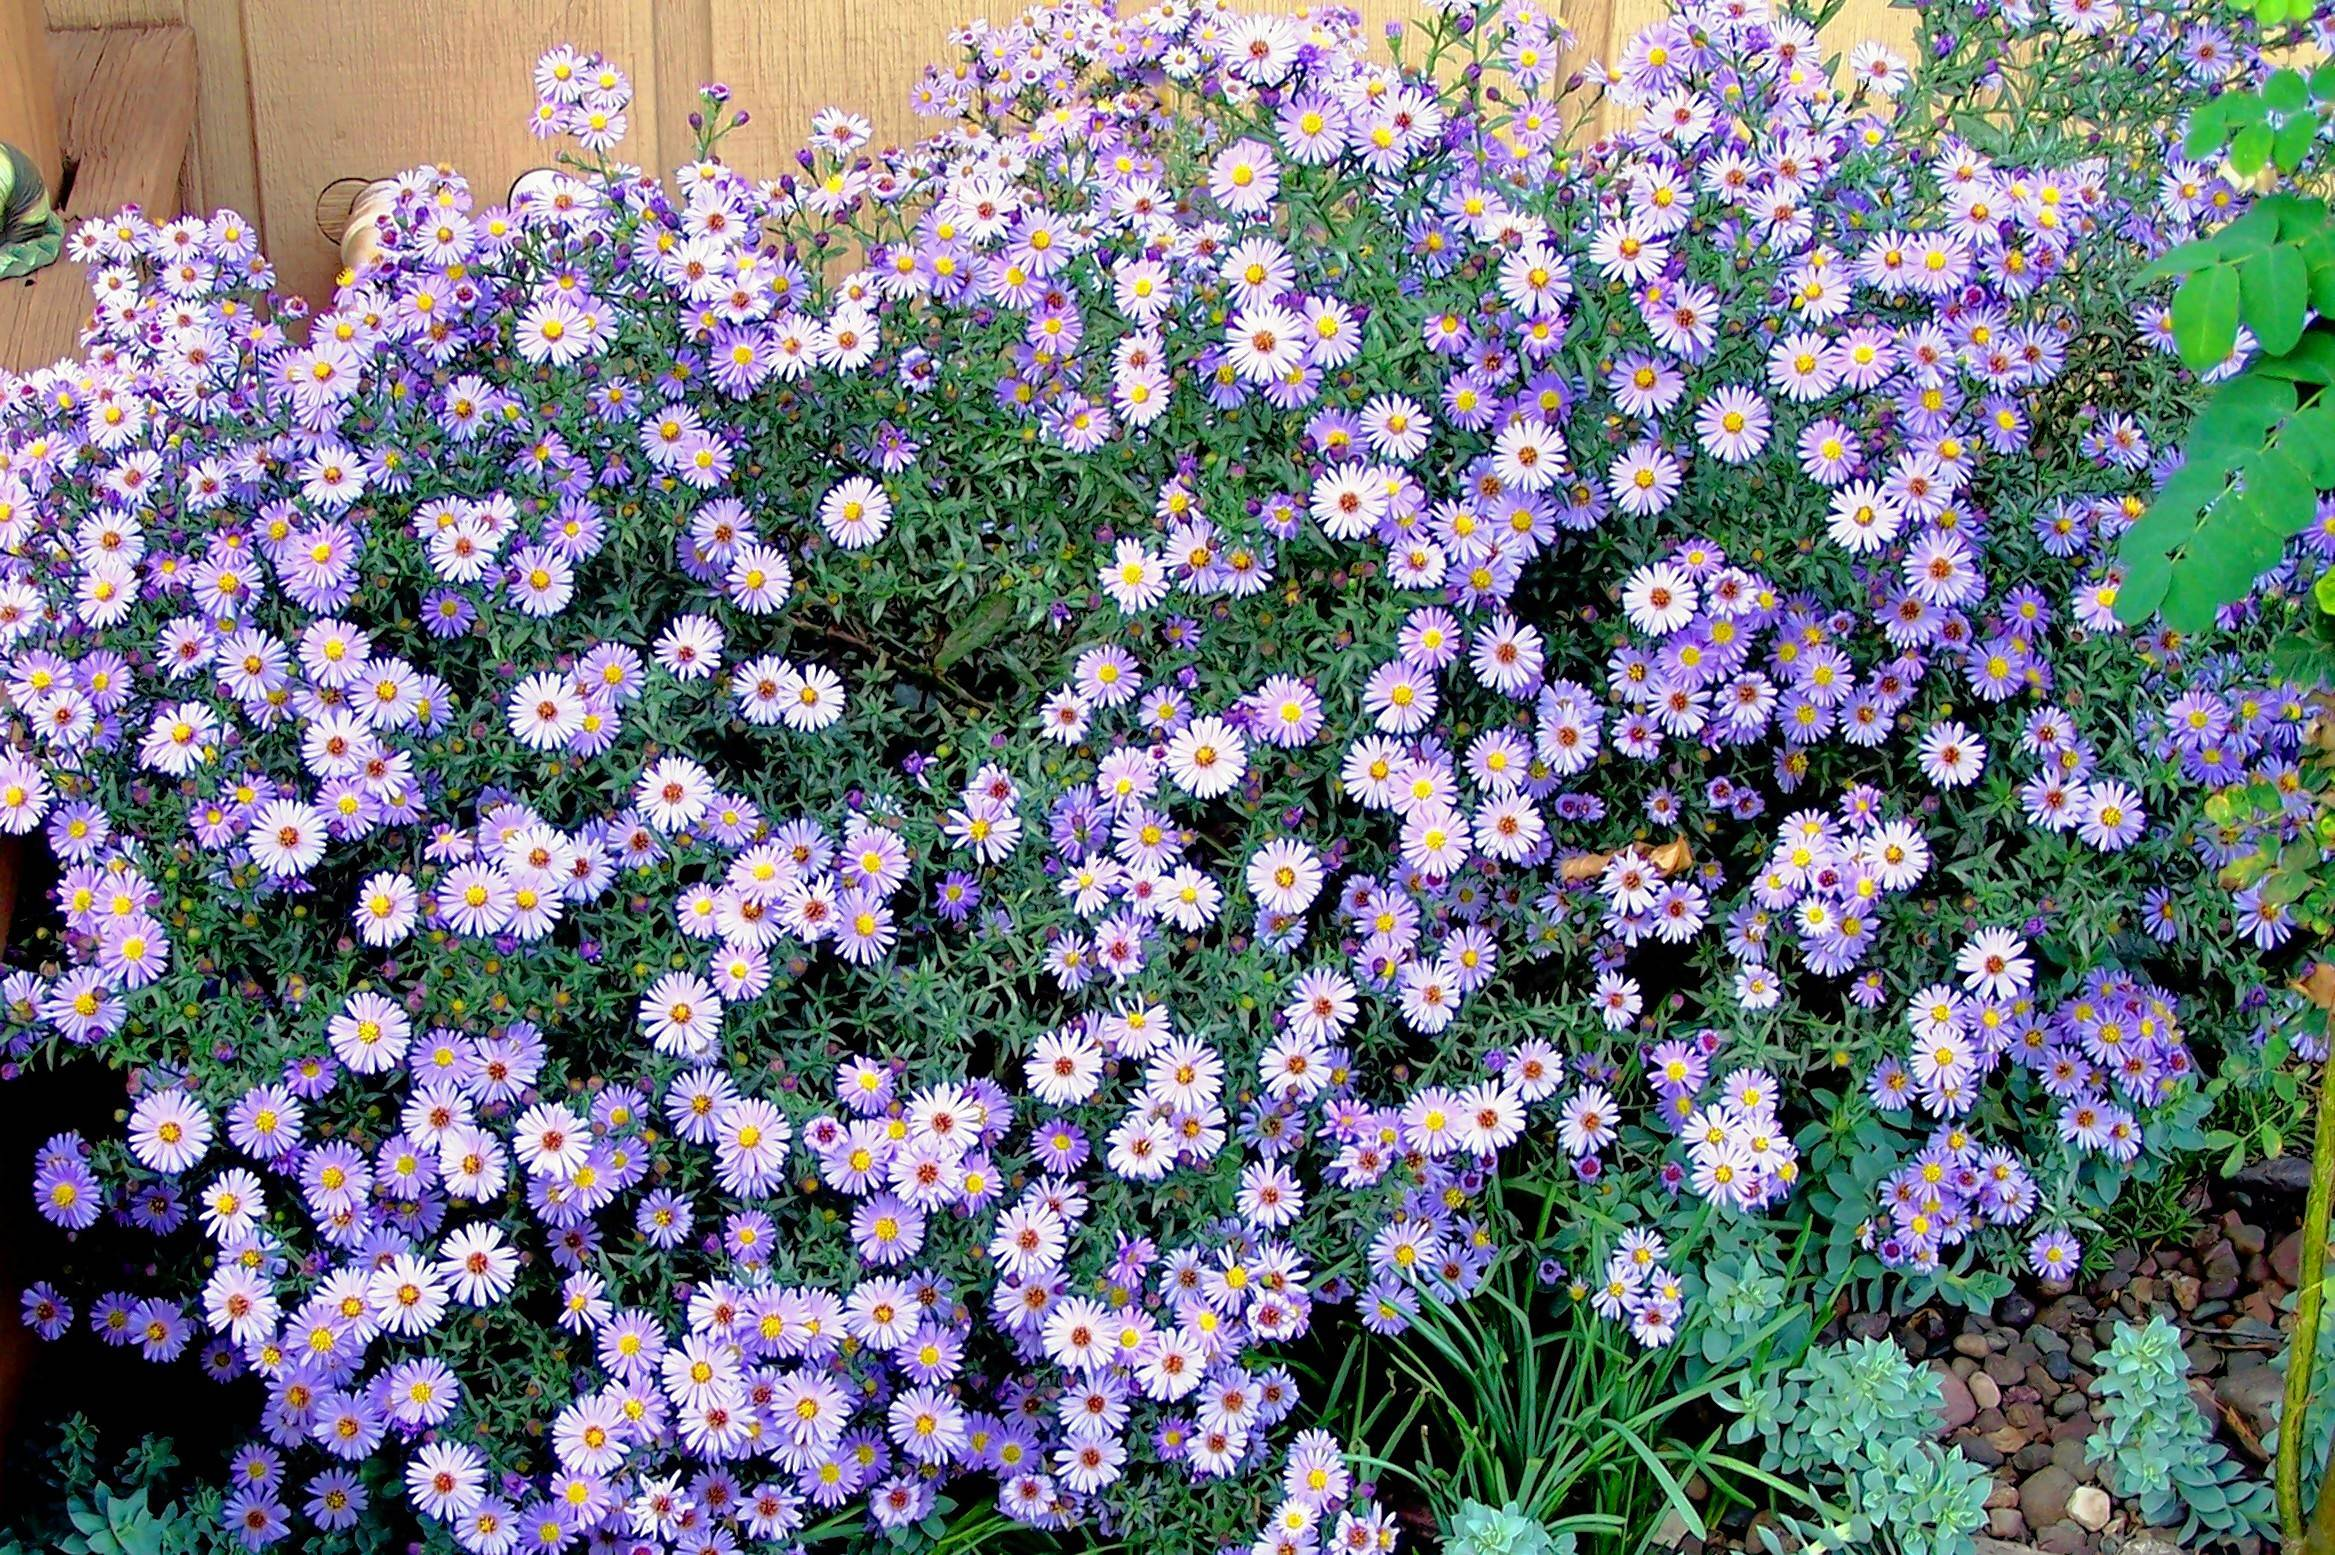 New England Asters Bloom In Shades Of Purple Lavender Pink Or White.